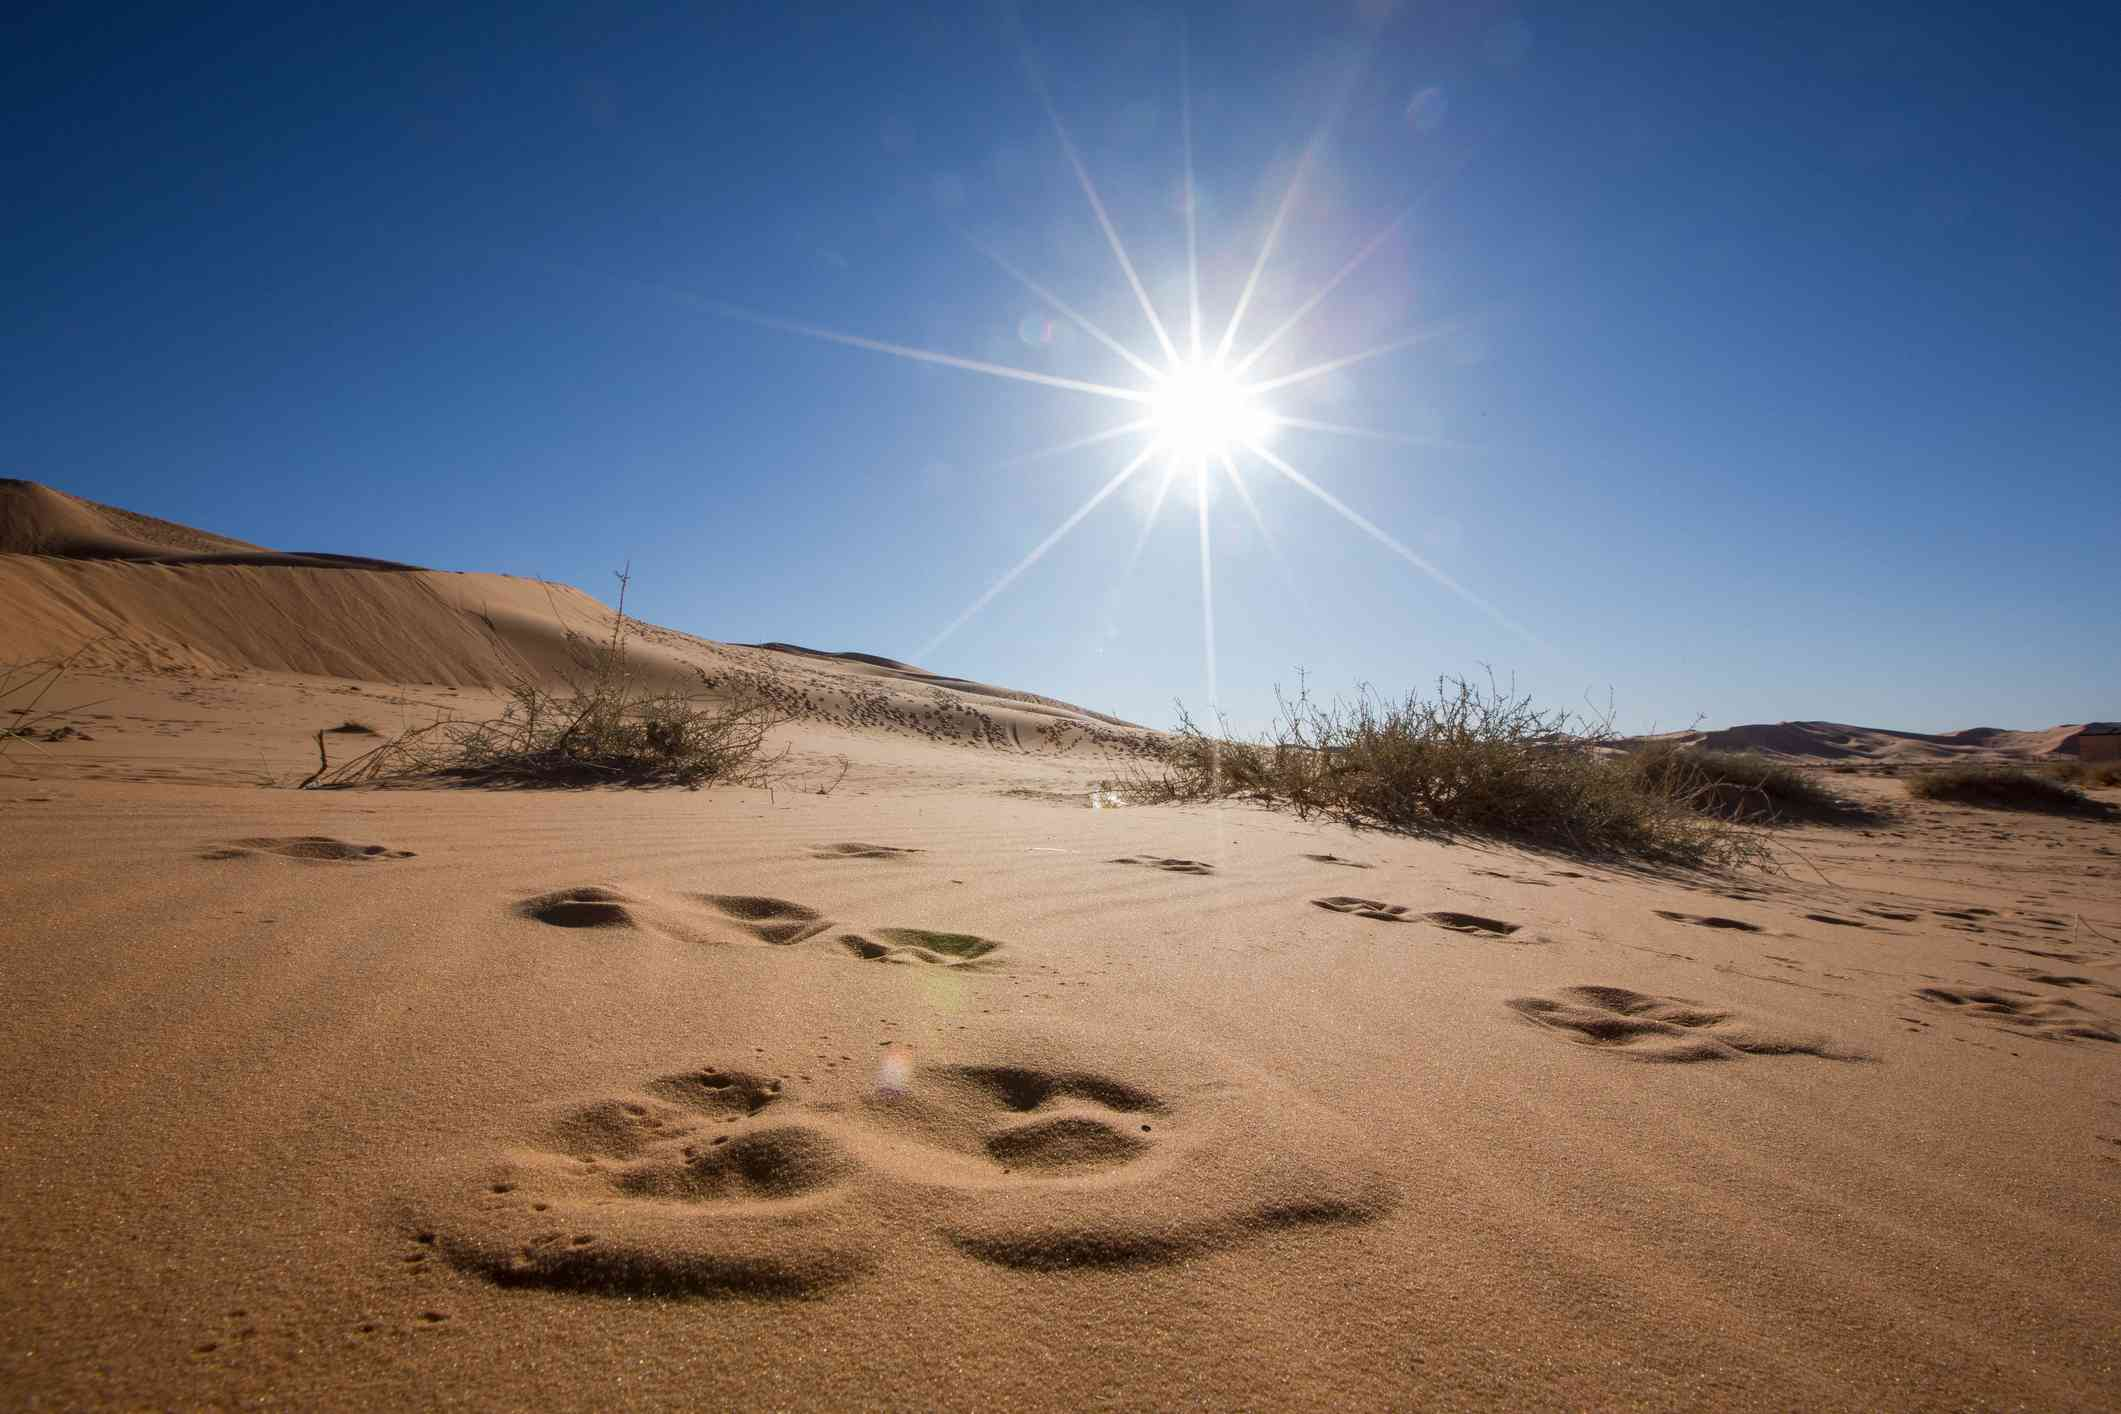 Sand Dunes Against Blue Sky And Bright Sun